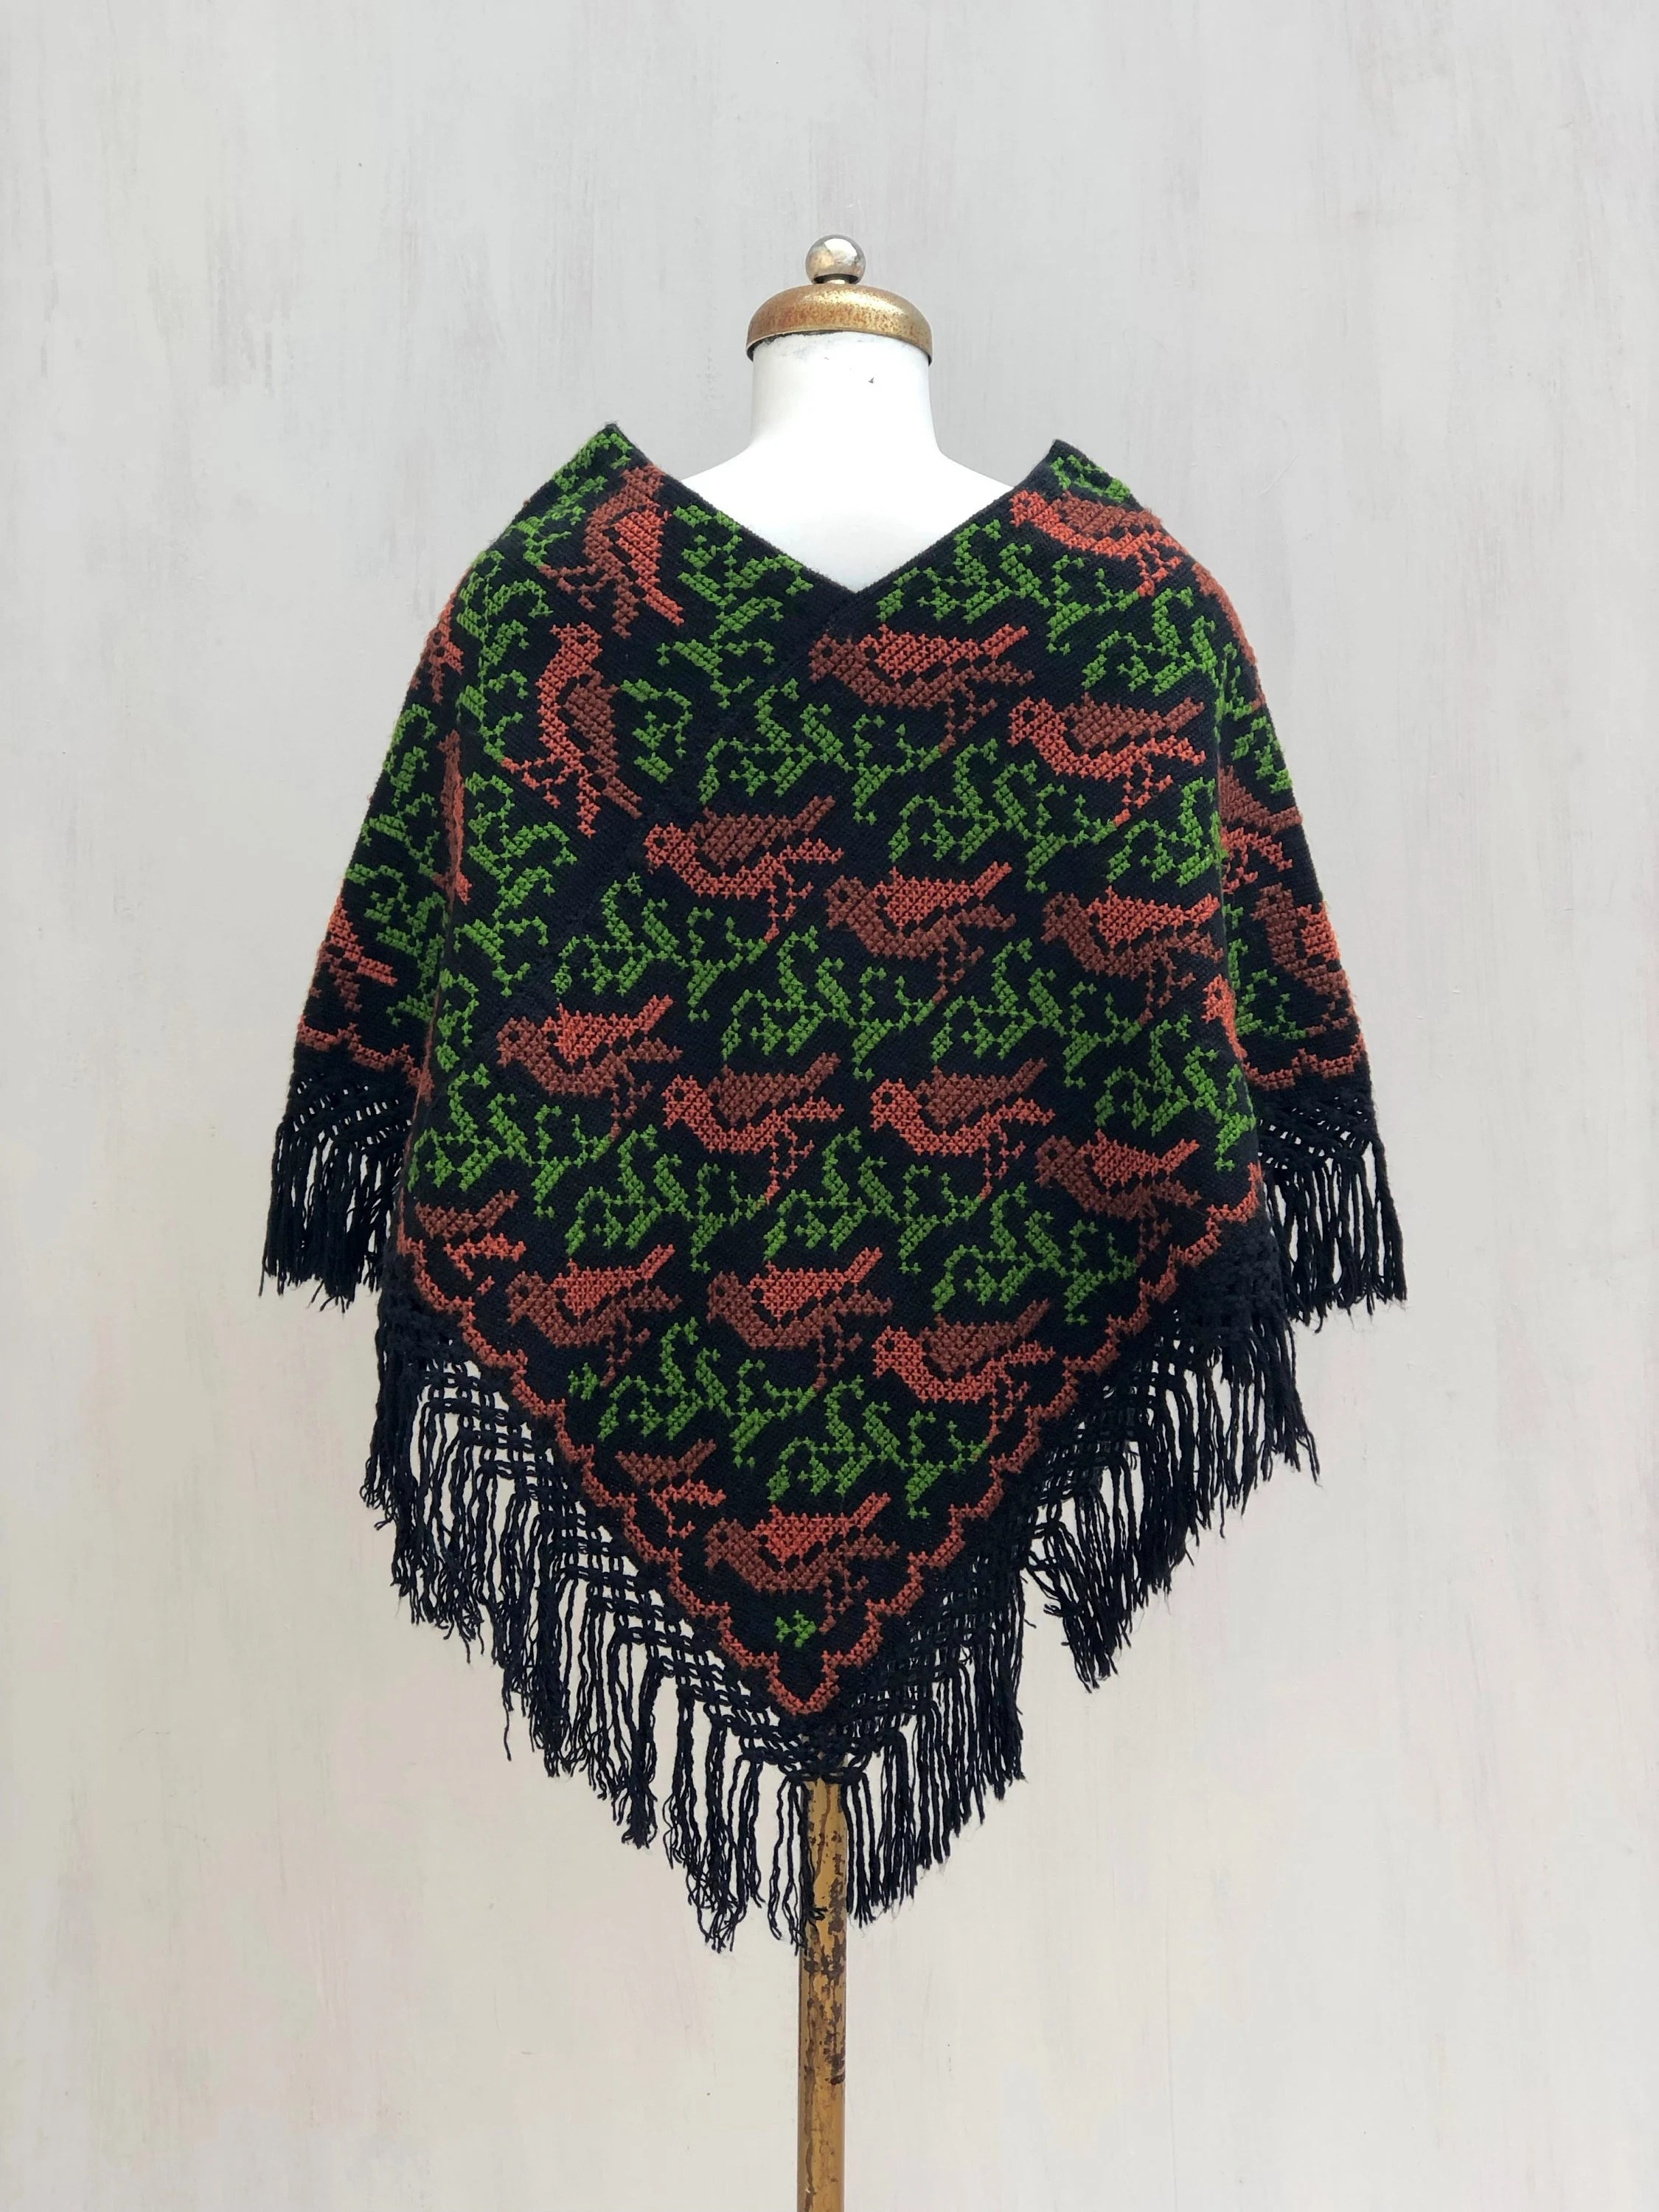 Banken Rofra Home Hand Woven Mexican Poncho With Embroidered Cross Stitch Birds Woven Poncho Poncho Mexican Woven Mexican Shawl Mexican Embroidered